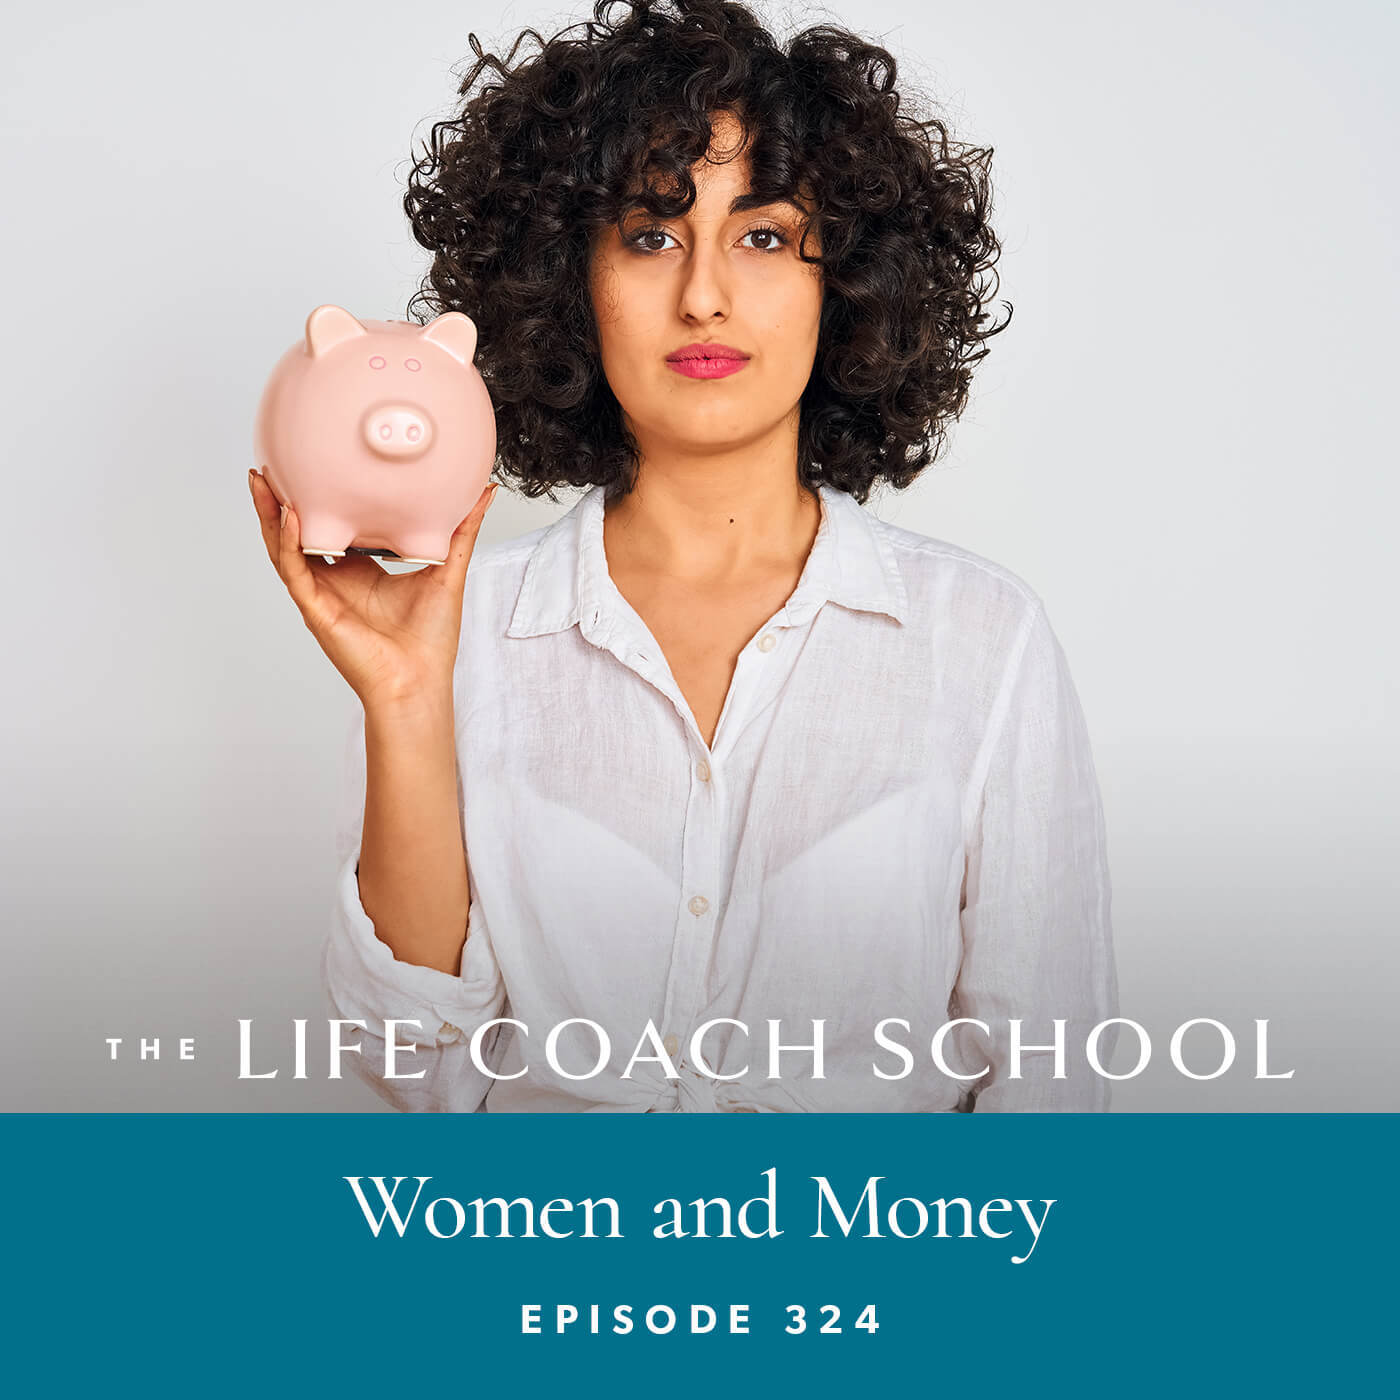 The Life Coach School Podcast with Brooke Castillo | Episode 324 | Women and Money